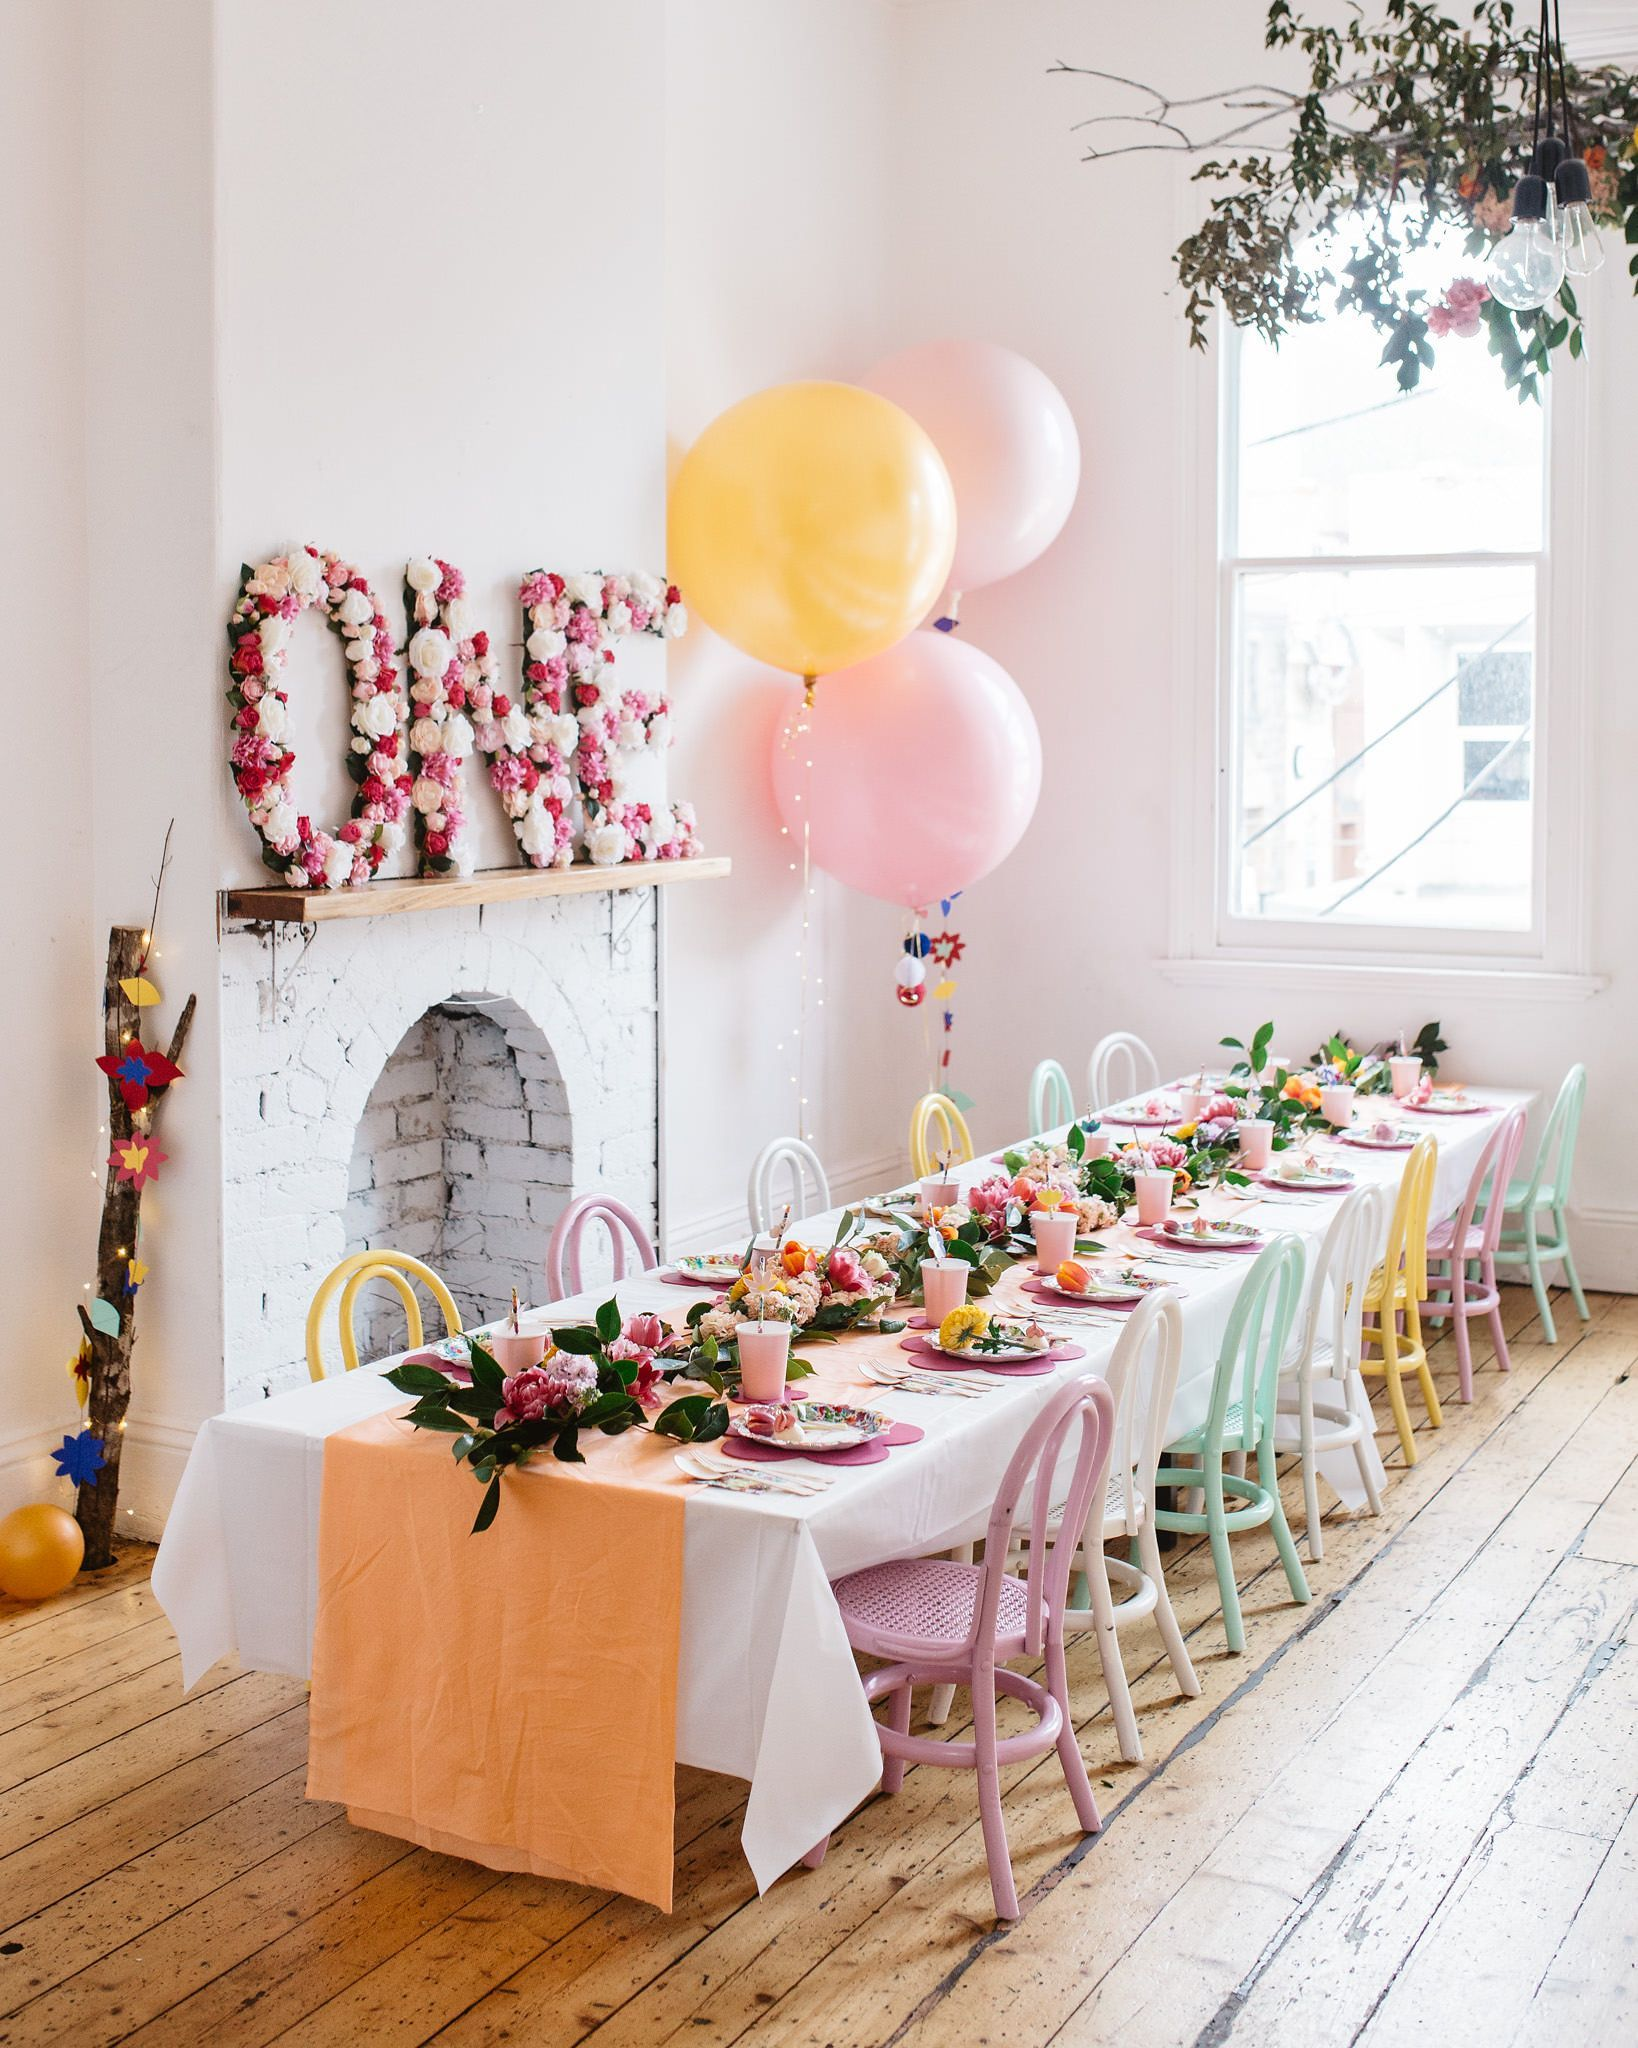 1 Year Old Birthday Party Ideas 1 Year Old Birthday Party Birthday Party Locations Birthday Party Places